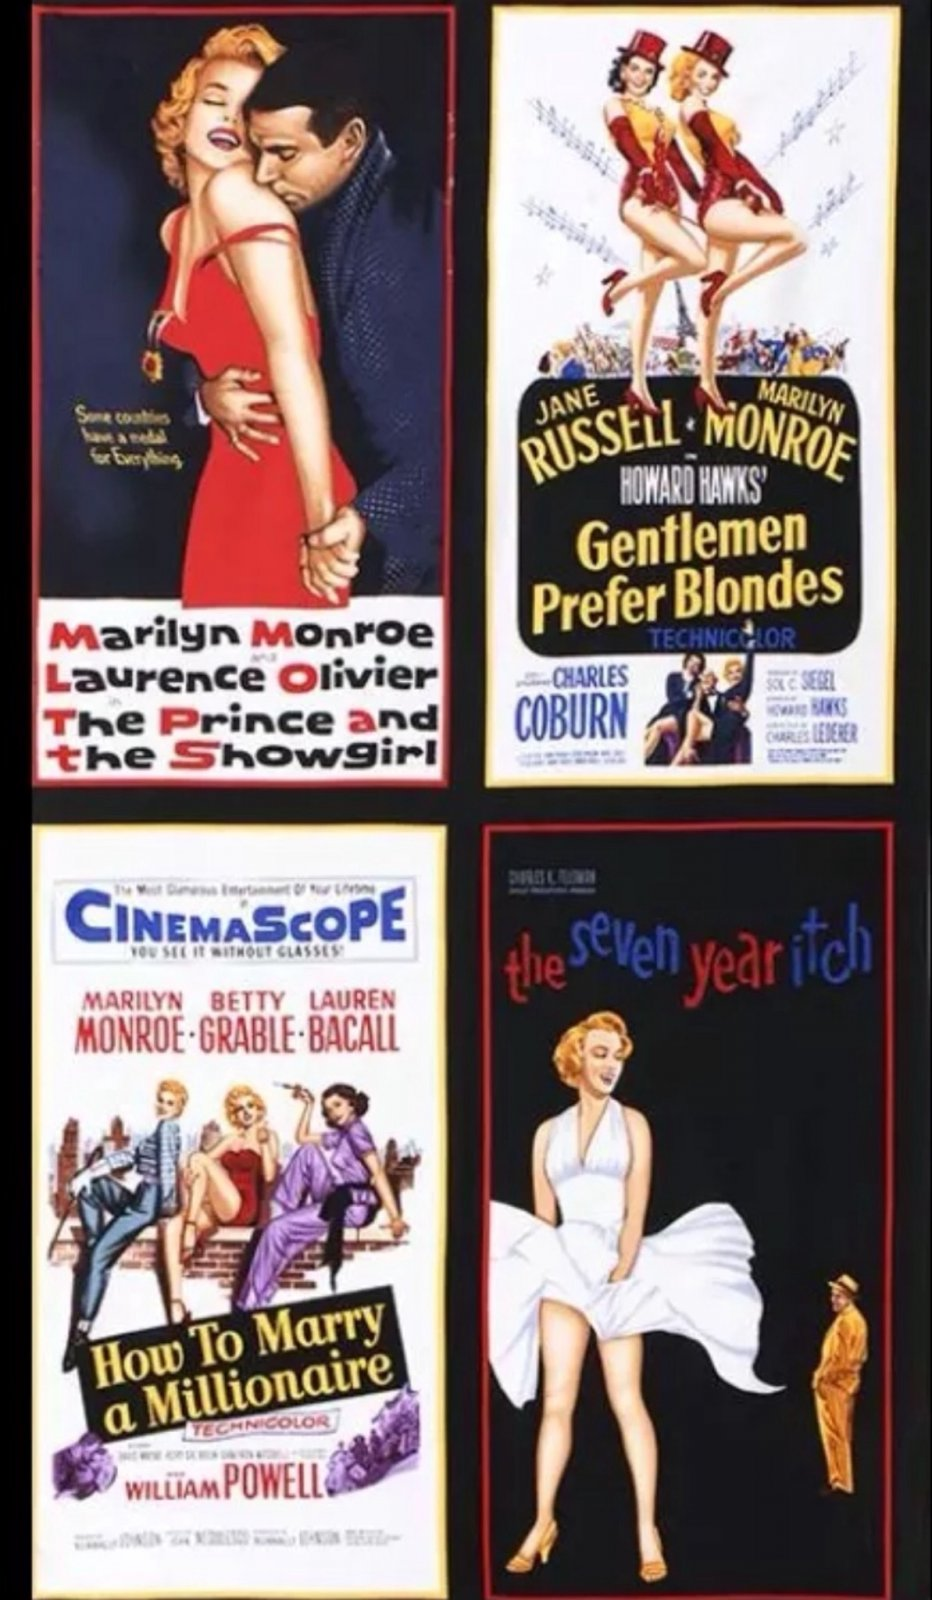 Marilyn Monroe Silver Screen Sexy Blonde Bombshell Movie Star Matinee Theater Movie Poster Cotton Quilt Fabric Four Poster Panel Print PNL105